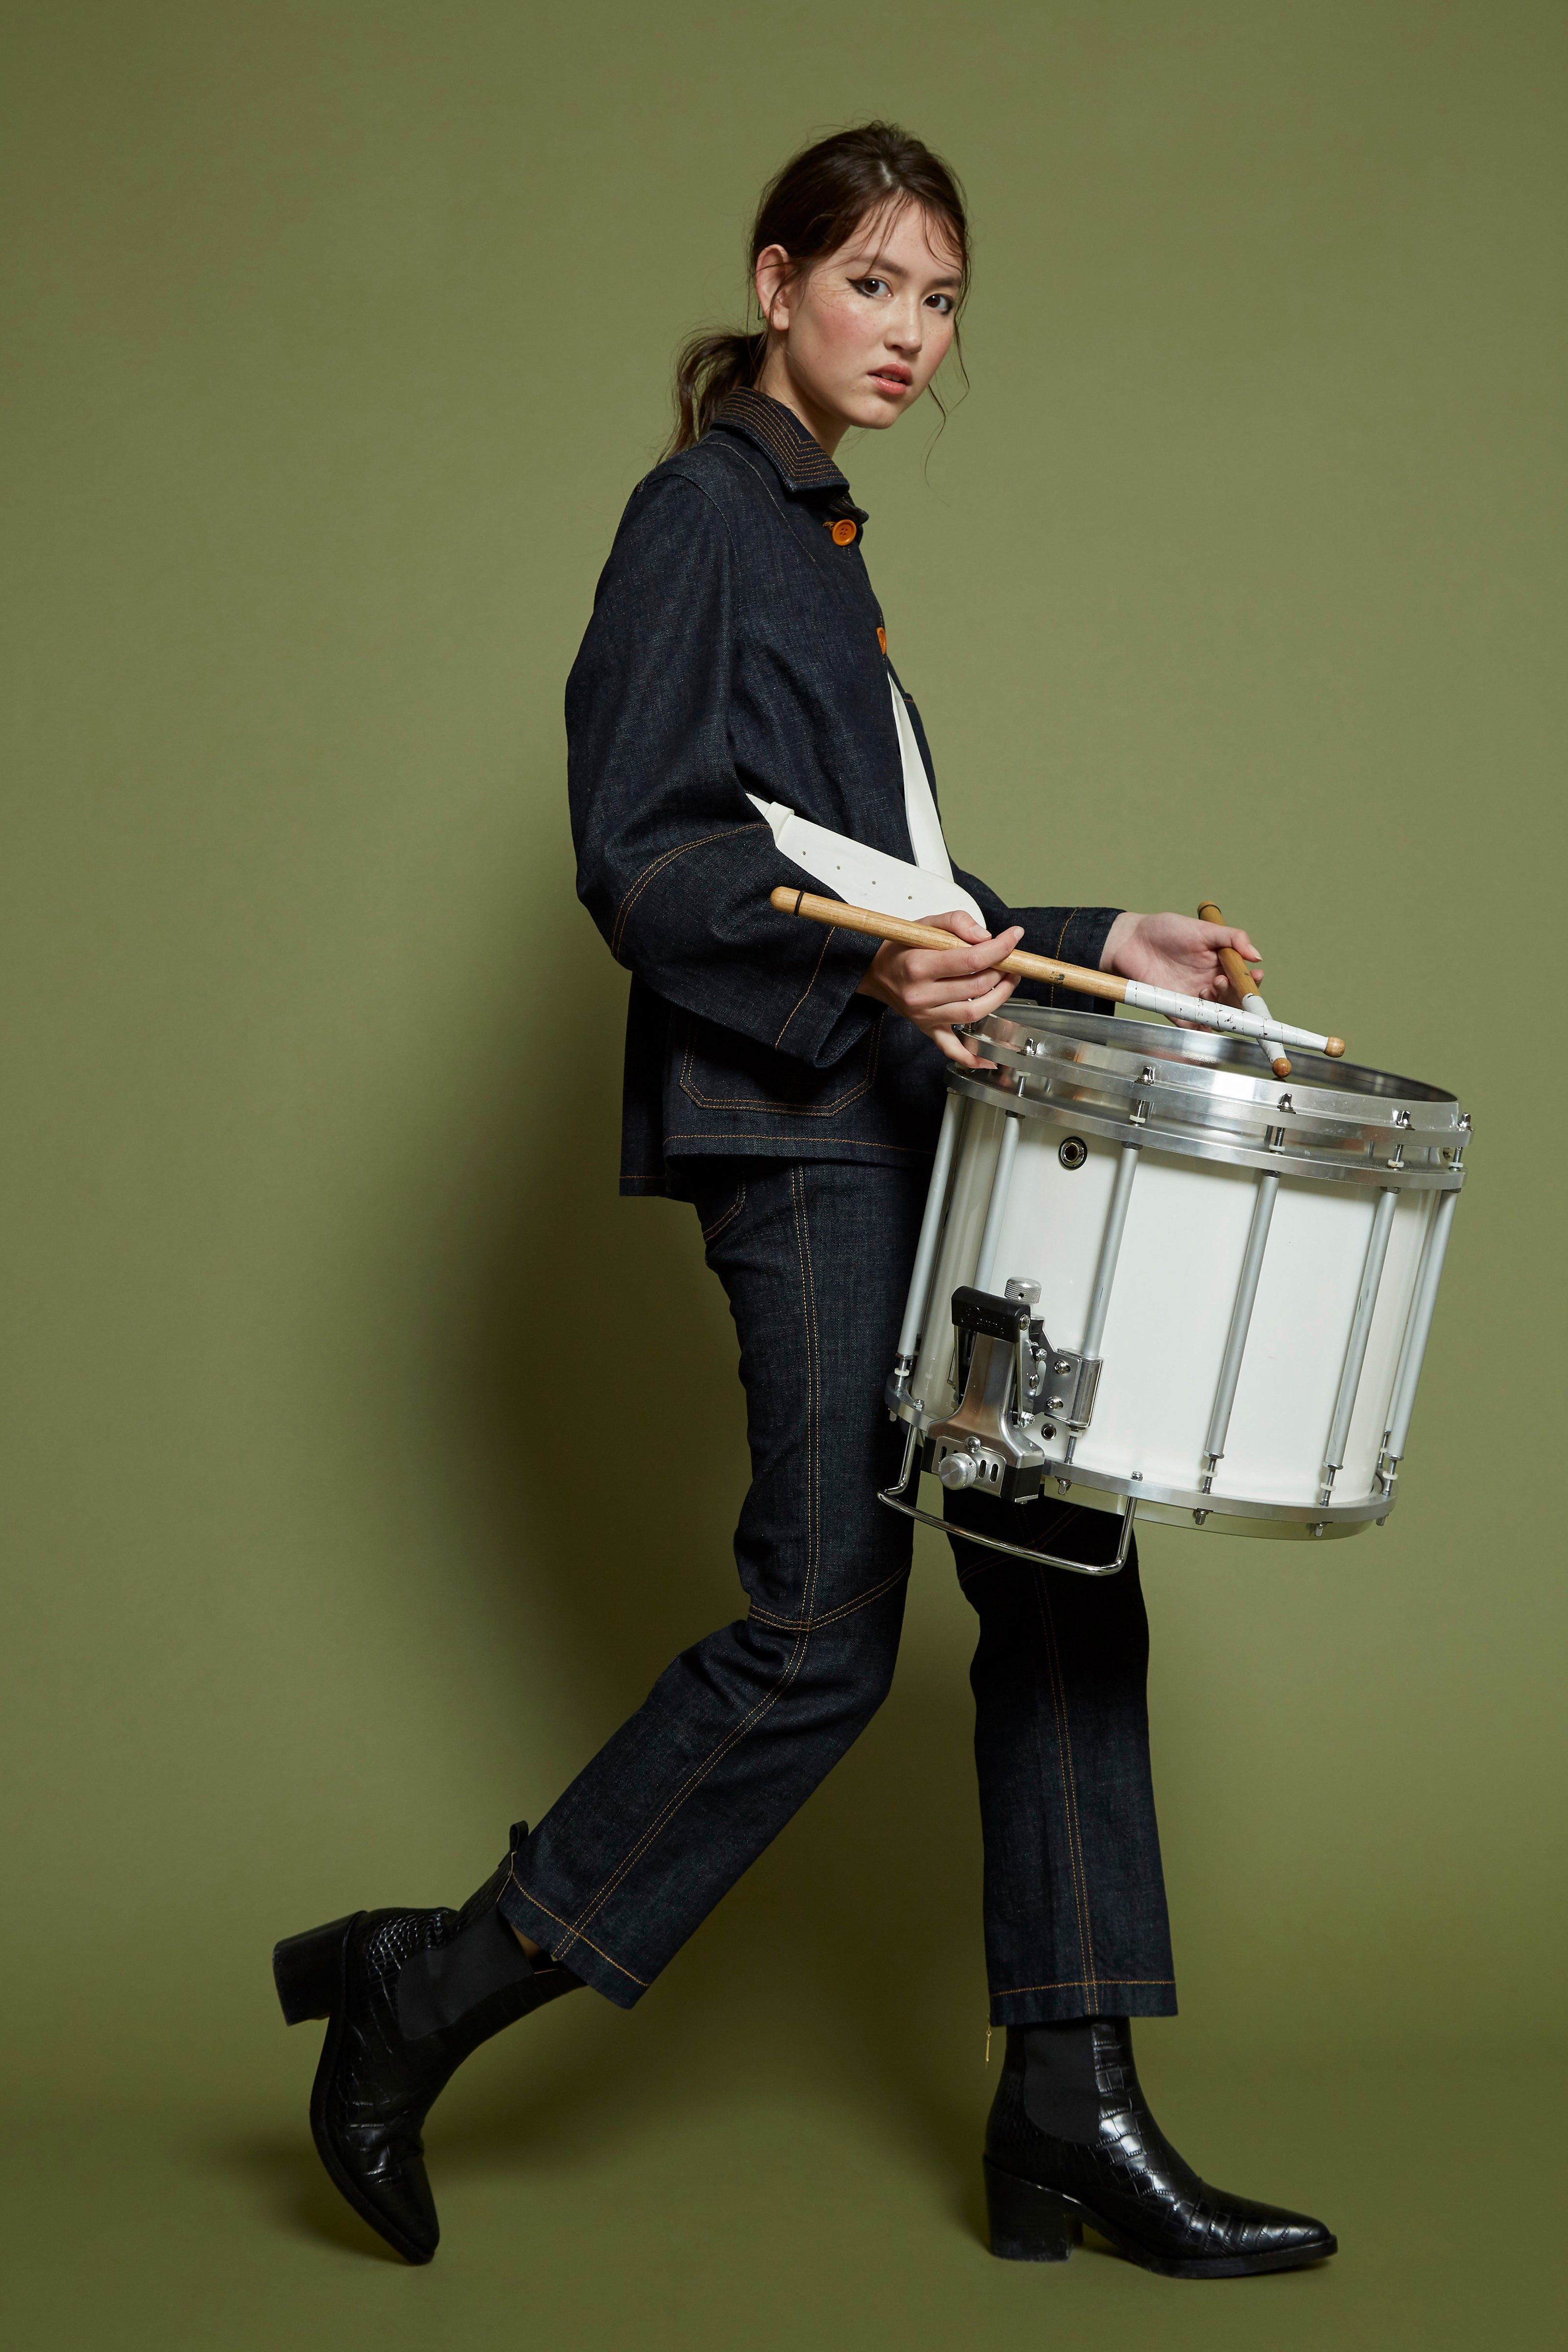 Woman playing drum wearing double denim from Outland Denim x Karen Walker collaboration